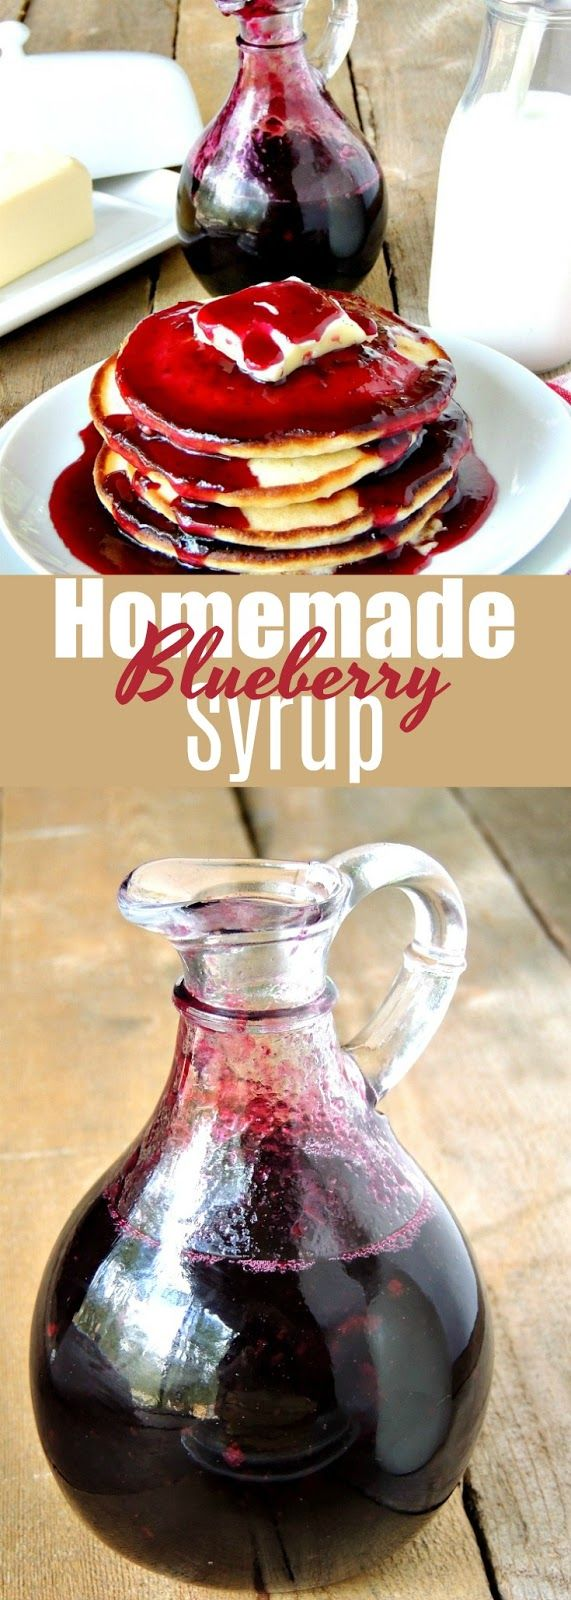 Photo of Homemade Blueberry Syrup